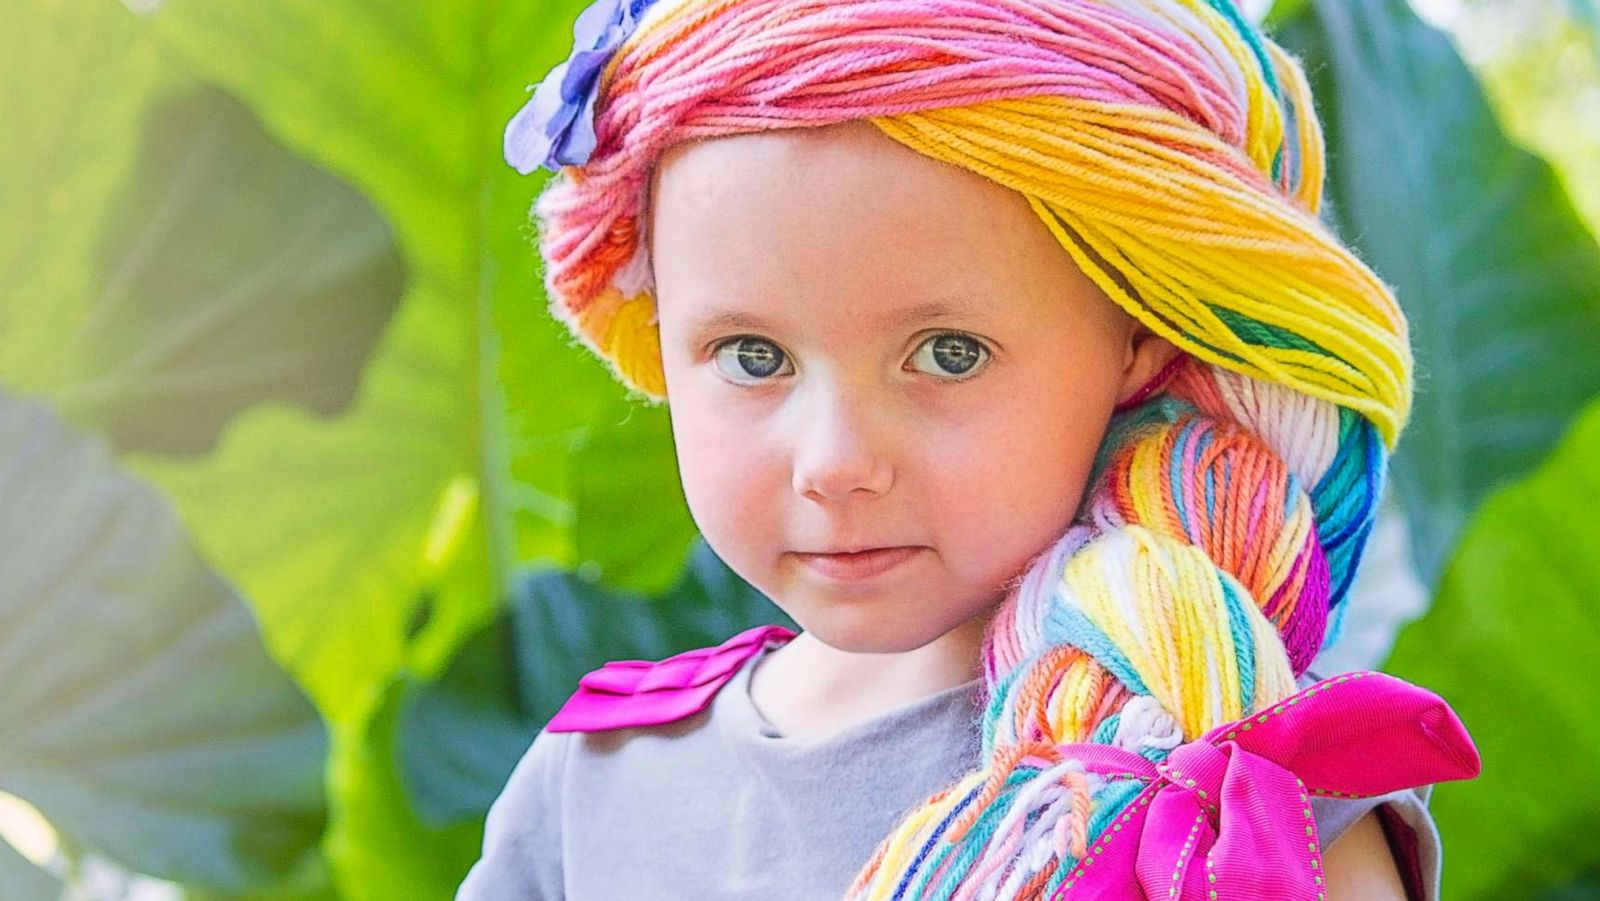 Magic yarn' wigs delight thousands of kids